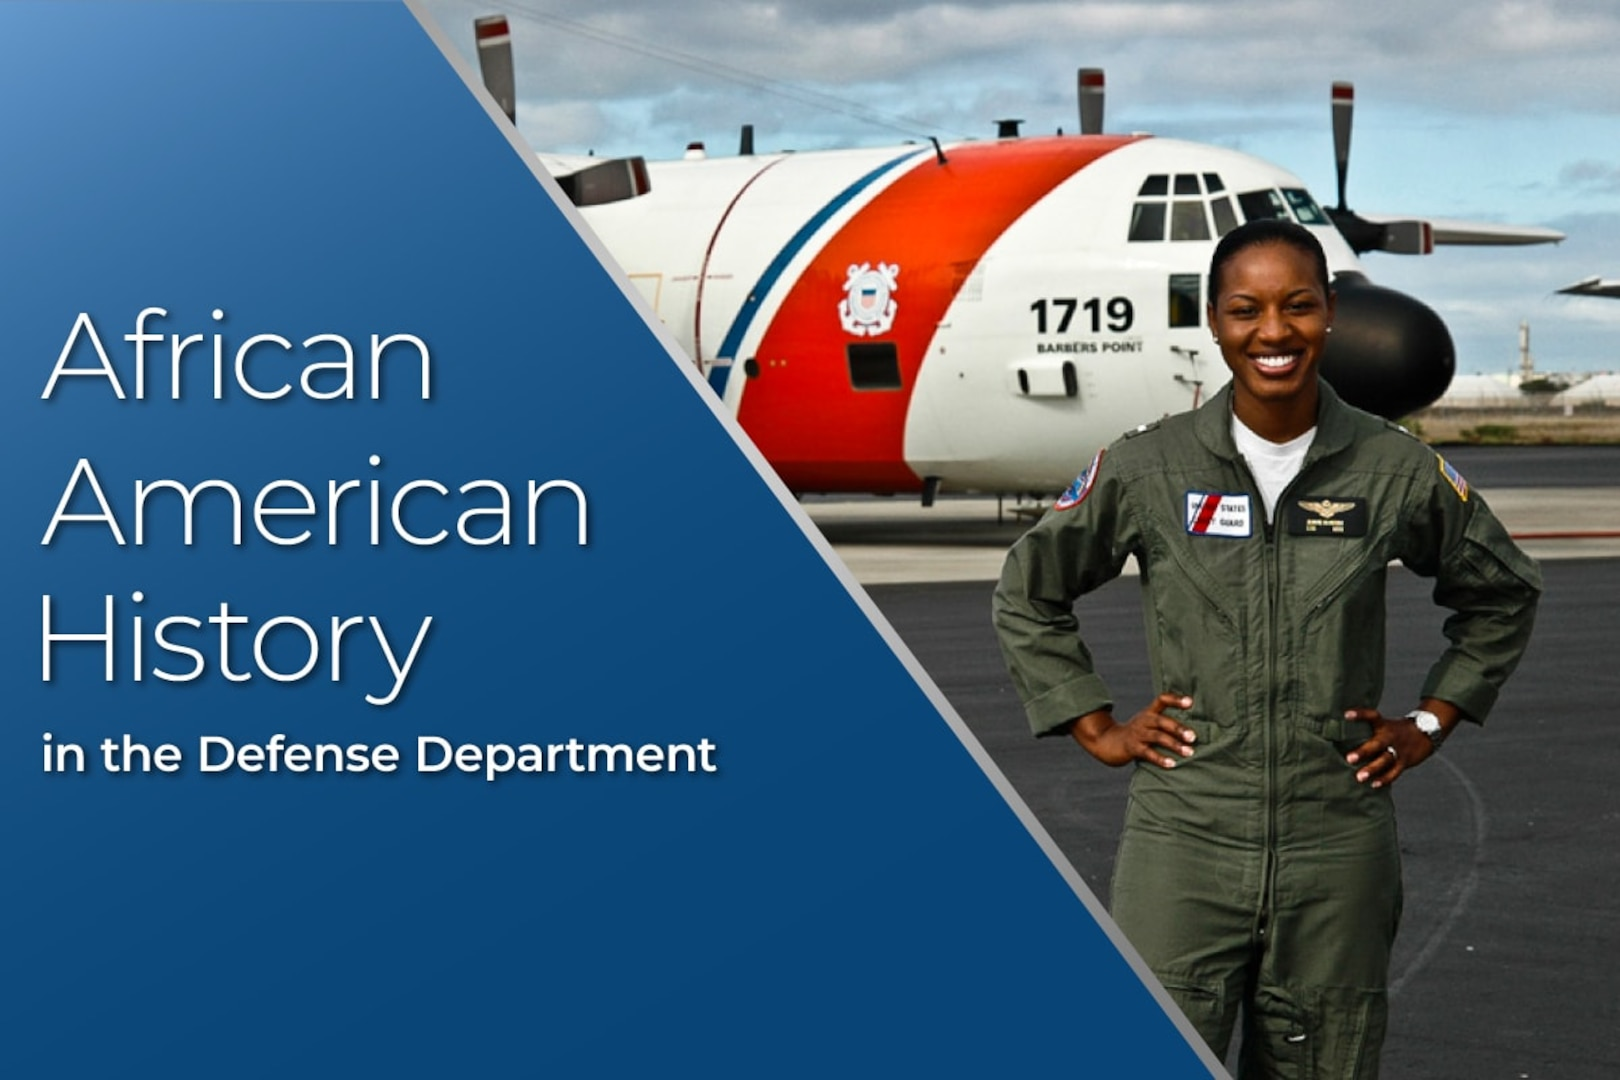 African American History in the Defense Department